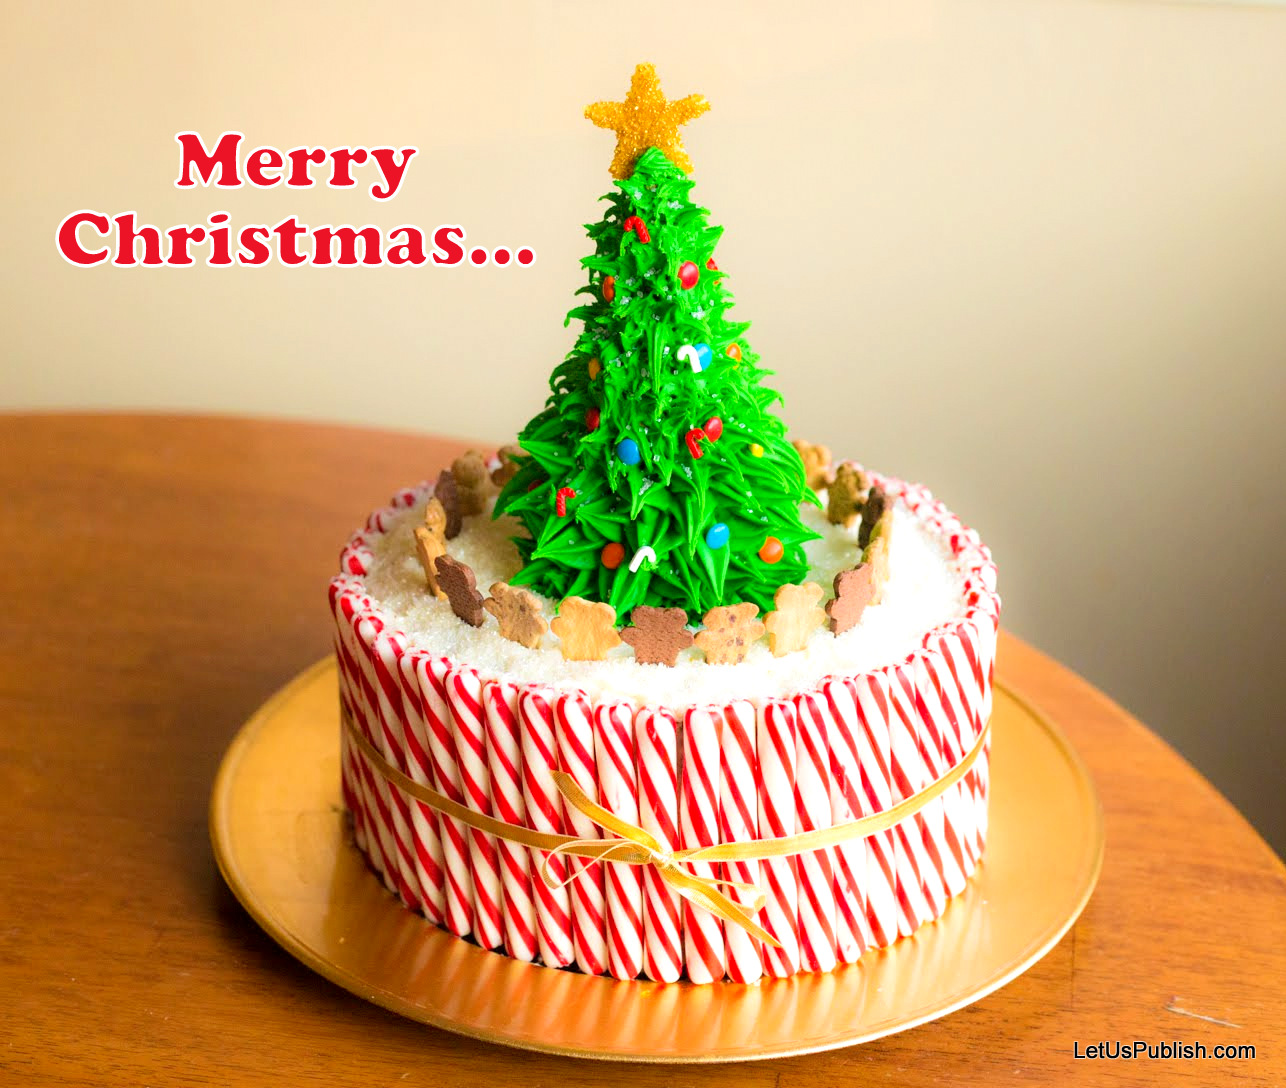 merry-christmas-2019-wallpaper , HD Xmas Cake Wallpaper